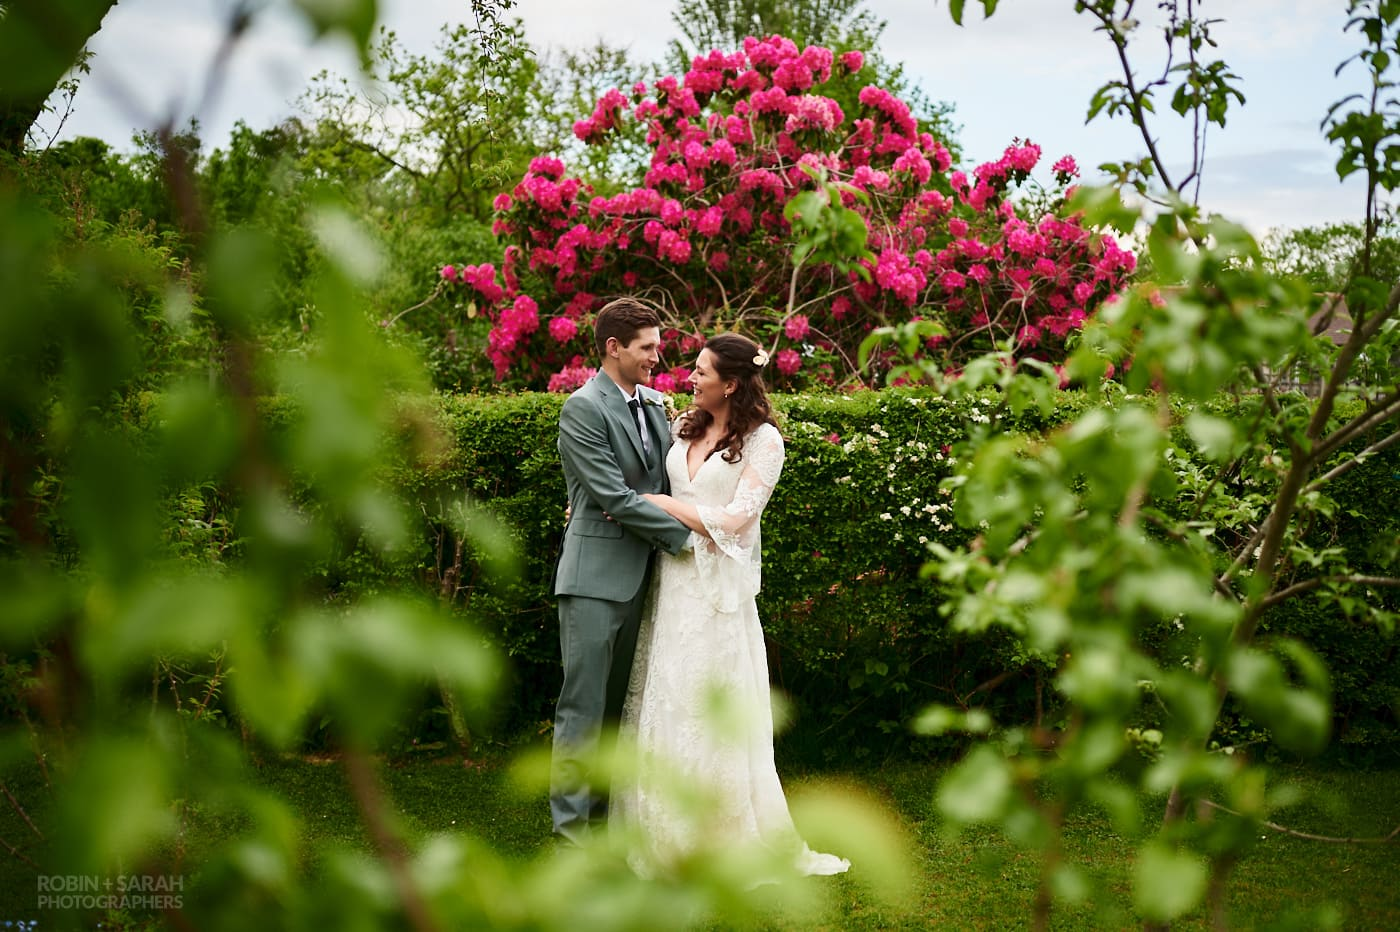 Bride and groom surrounded by beautiful gardens